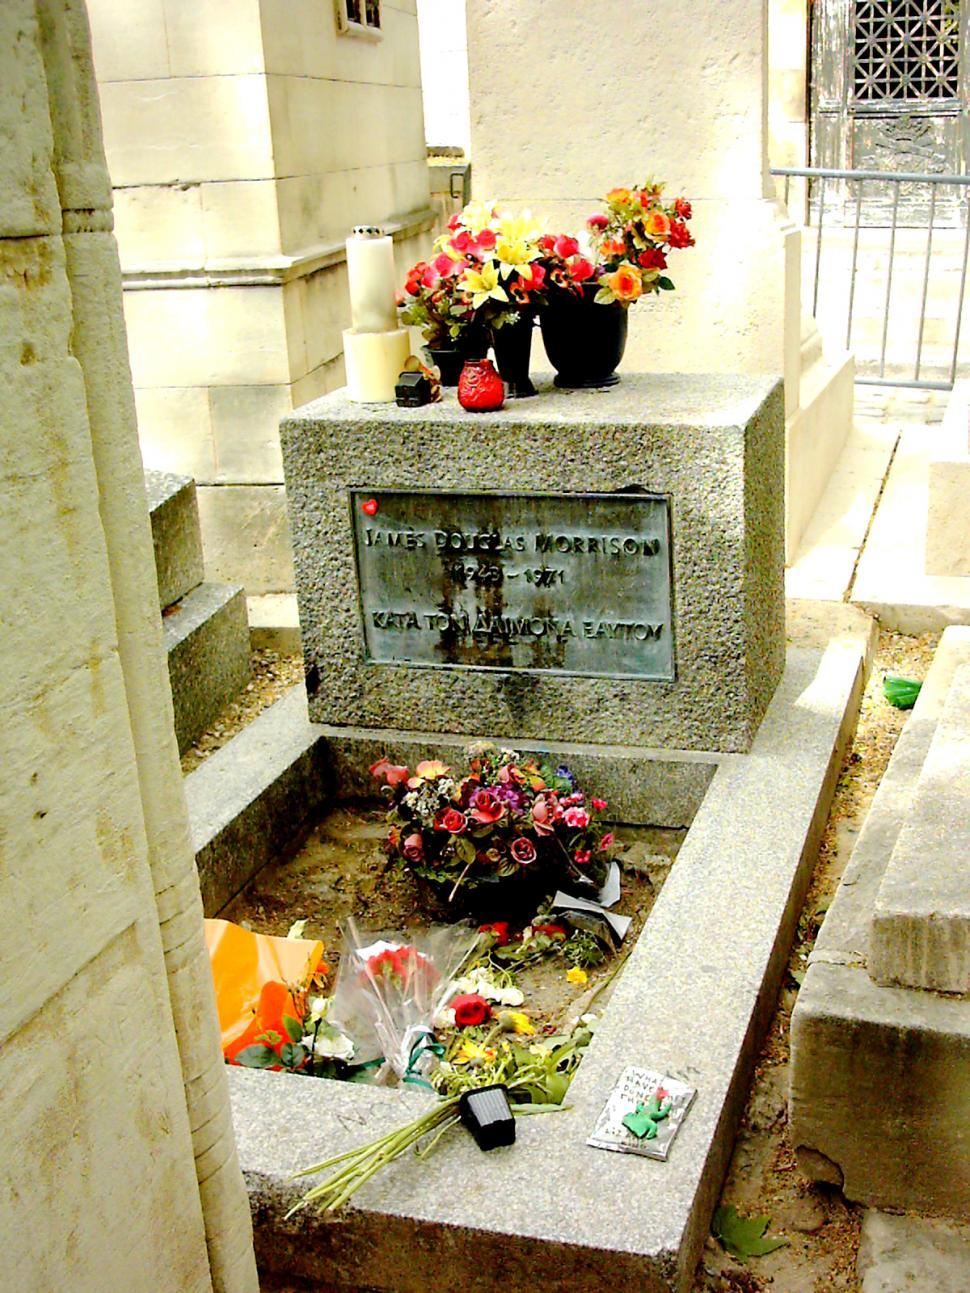 Free image of Jim Morrison's grave at Pere Lachaise in Paris